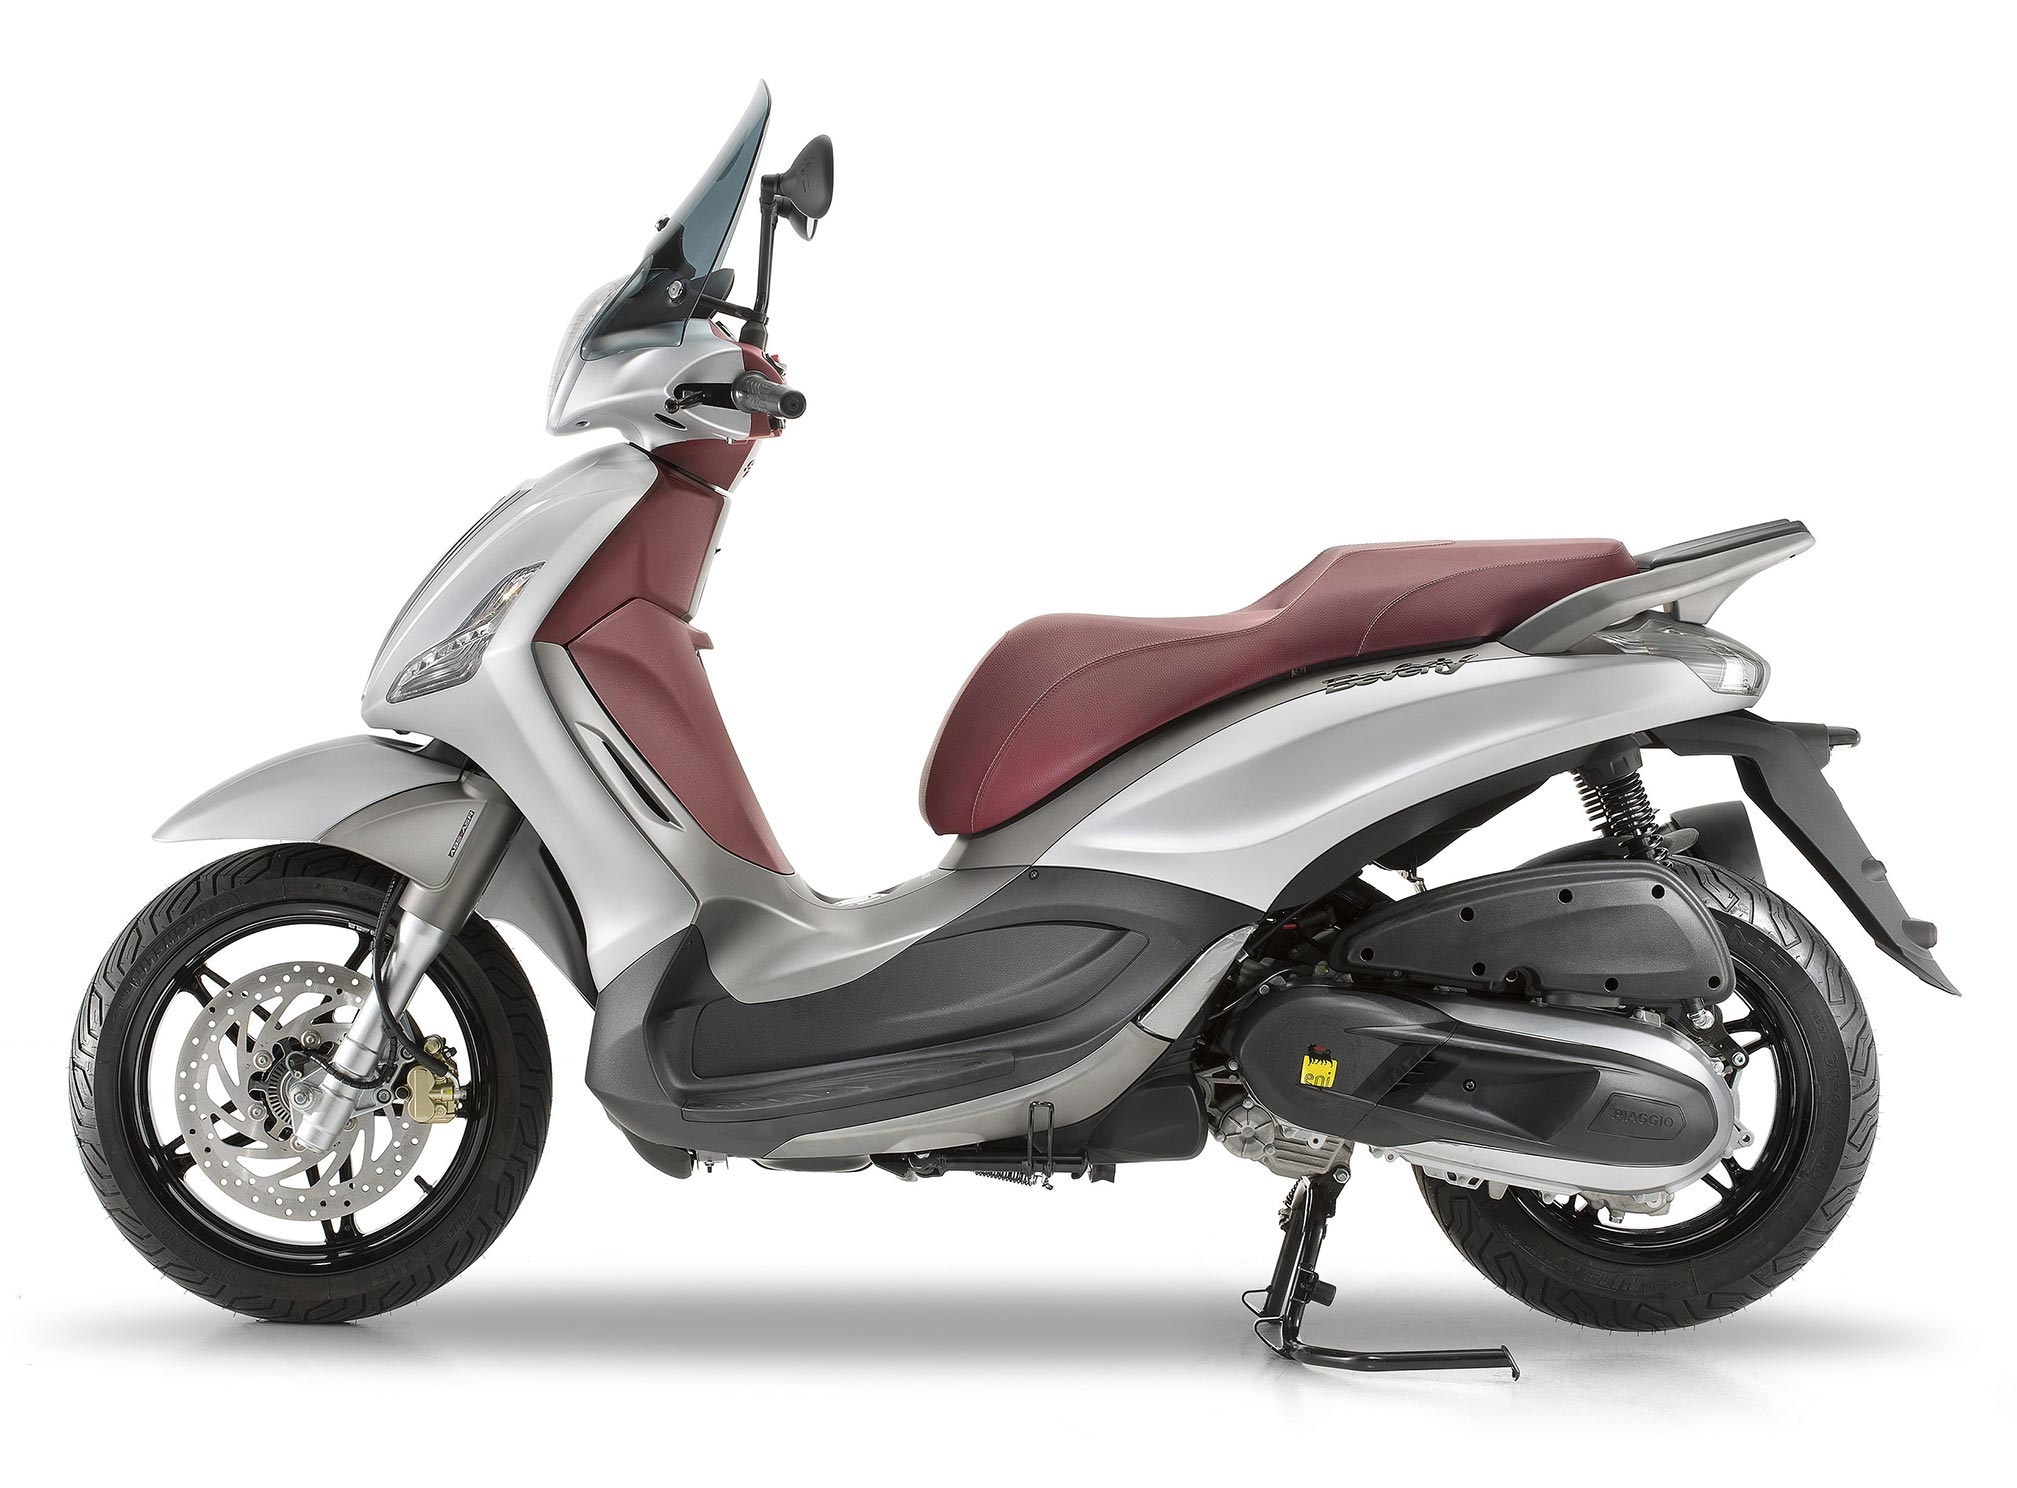 2017 piaggio beverly 350 sporttouring review